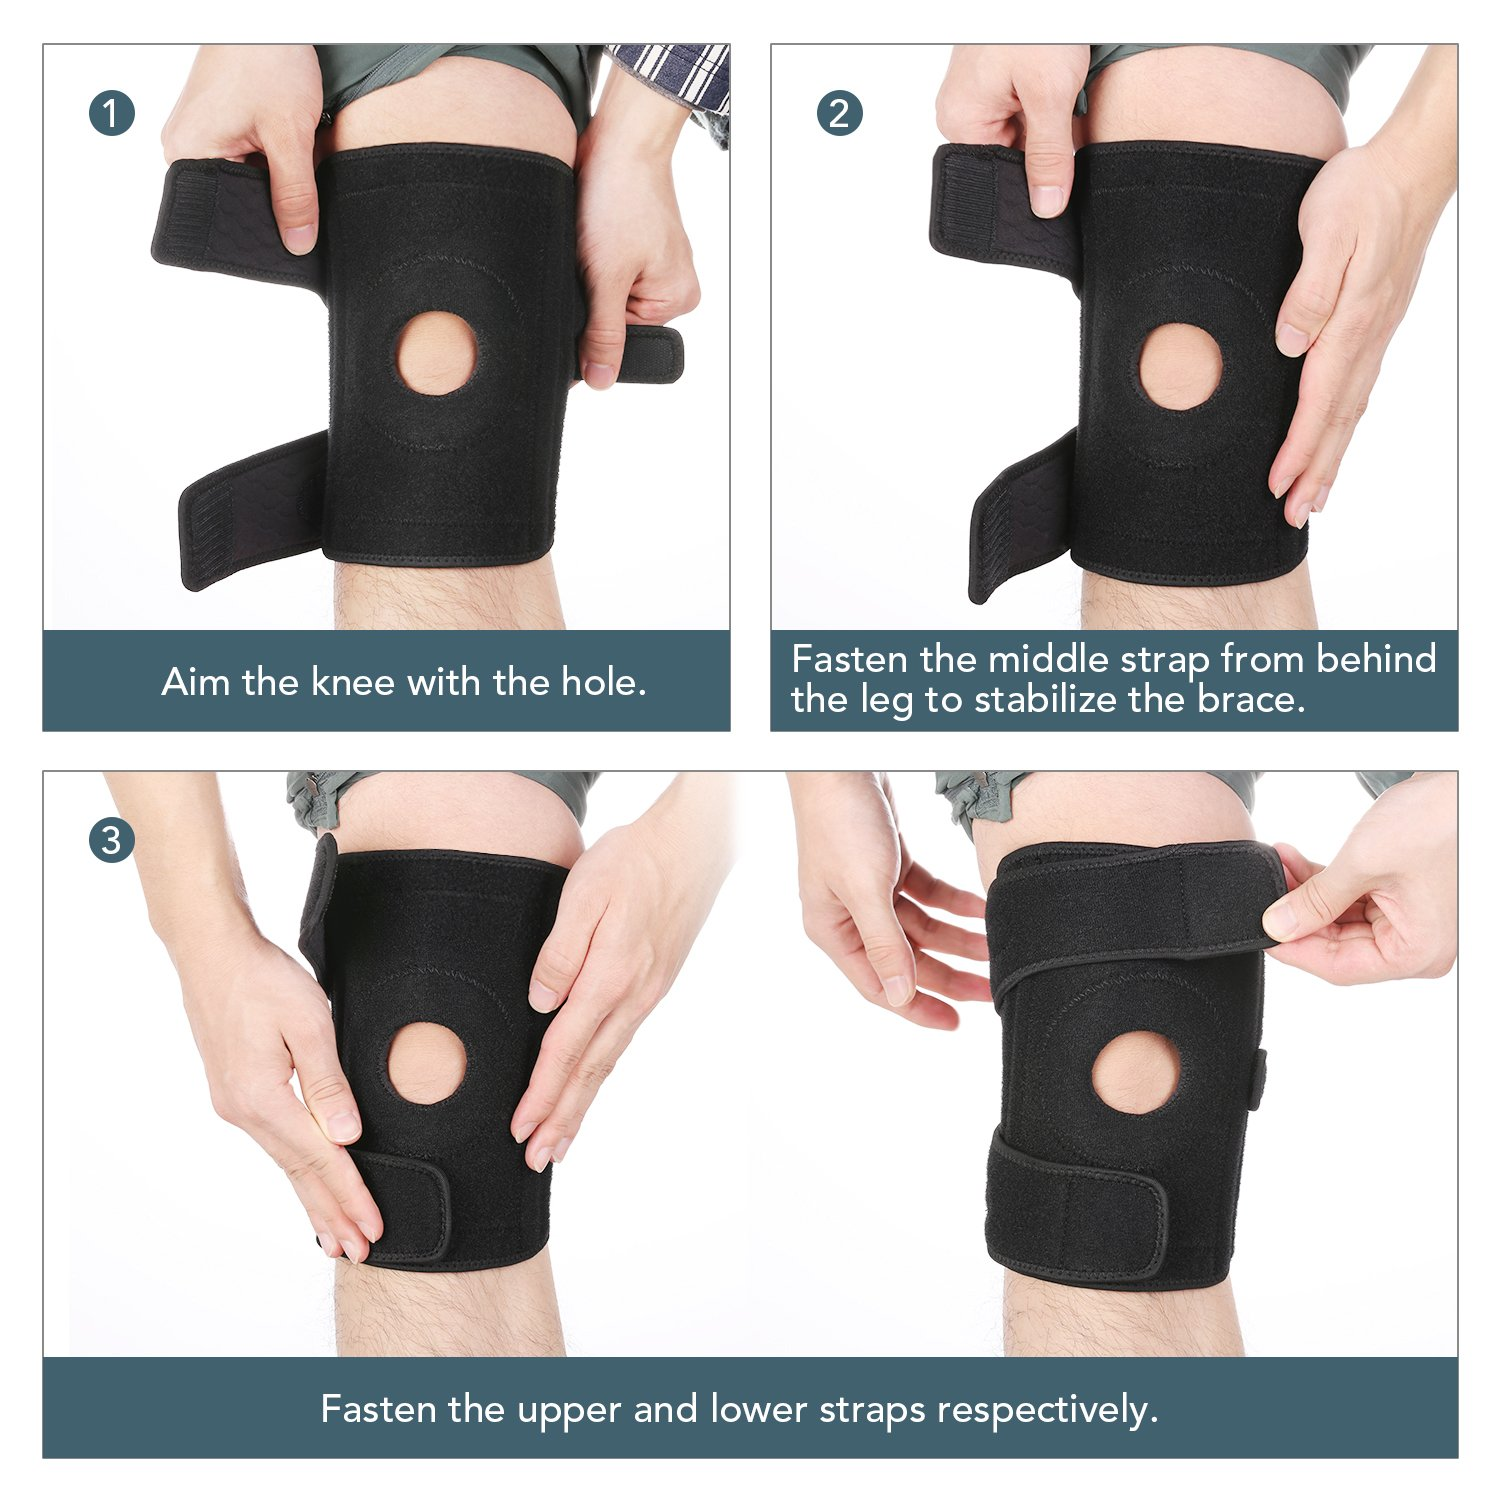 Amazon.com: MARNUR Knee Brace with Kneecap Stabilizer and Adjustable  Strapping for Weightlifting, Weight-Bearing Exercise and Outdoors  Activities, ...